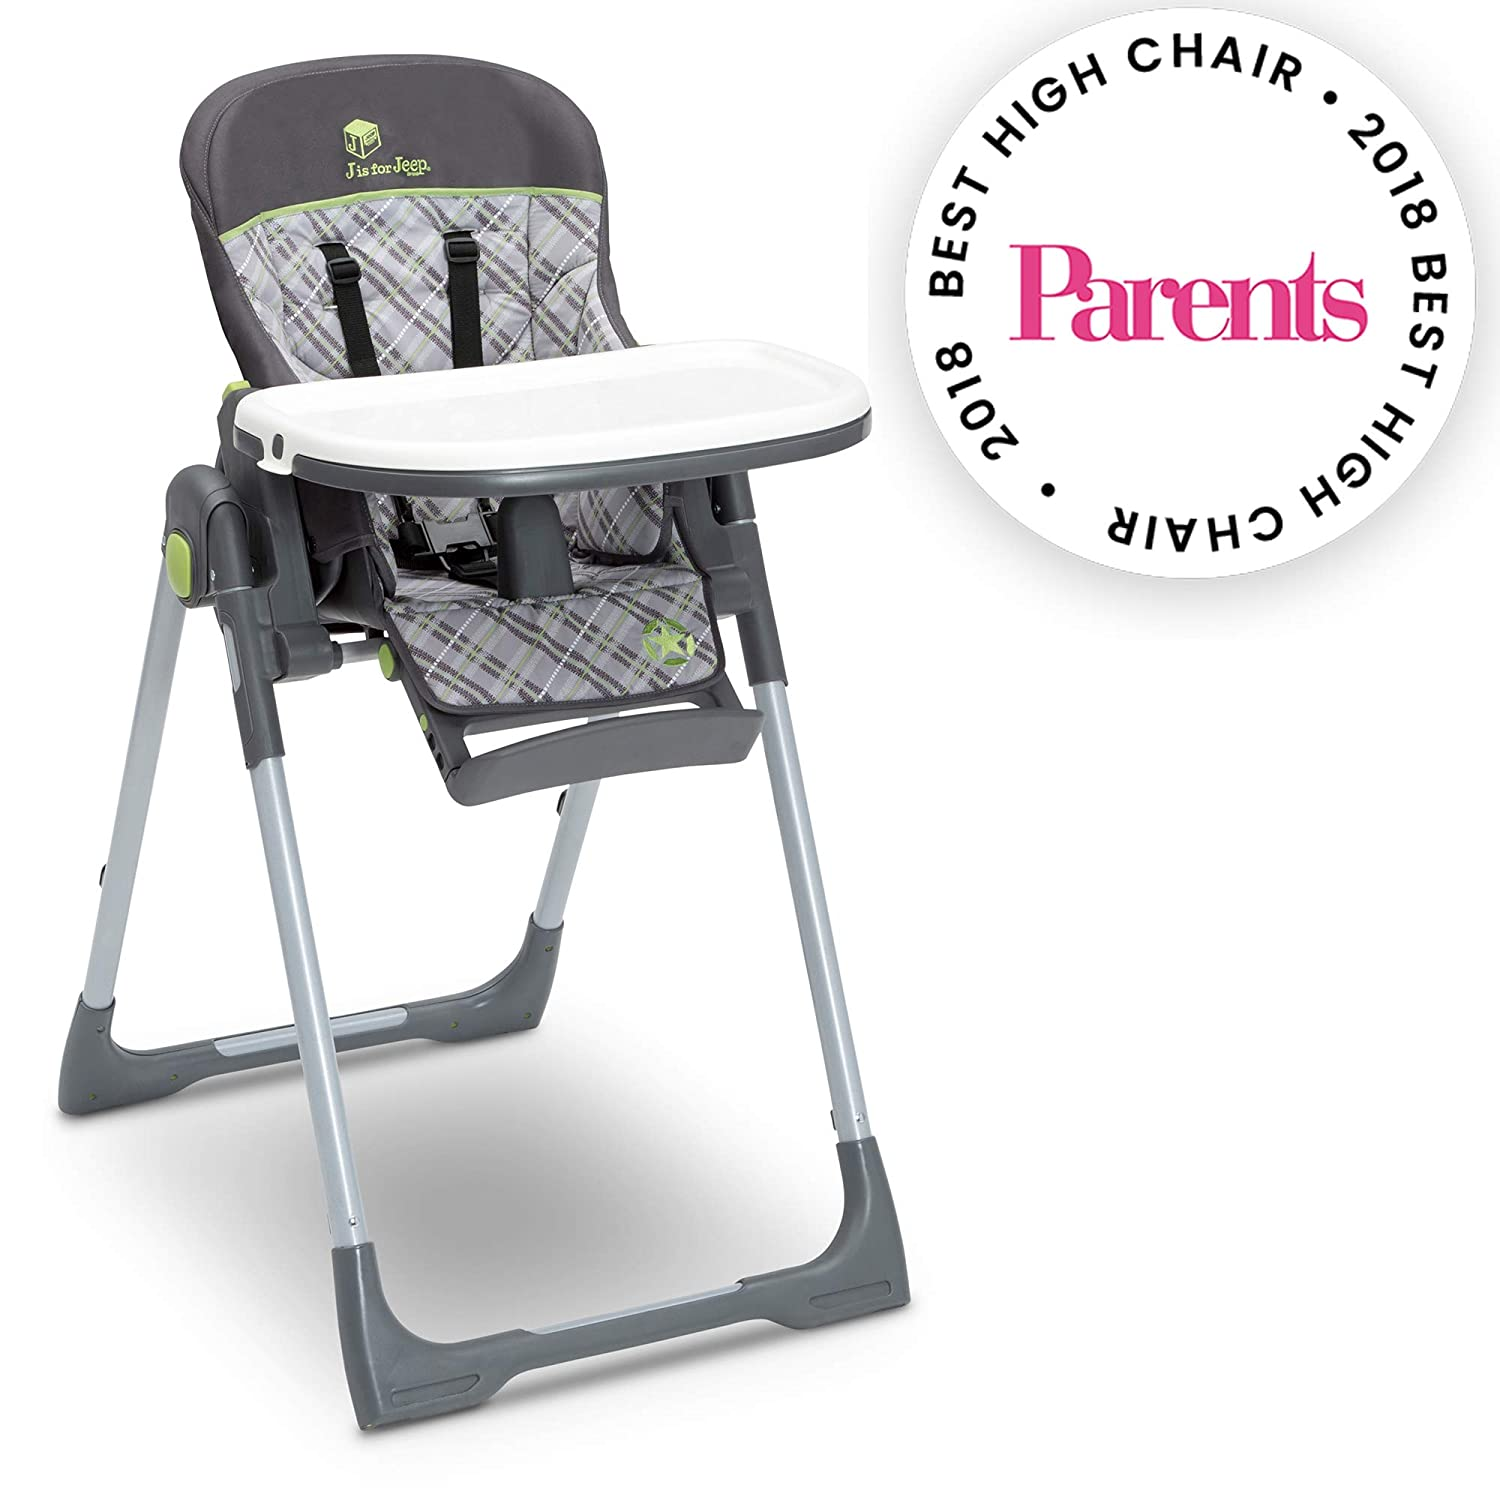 Jeep Classic Convertible High Chair for Babies and Toddlers, Fairway